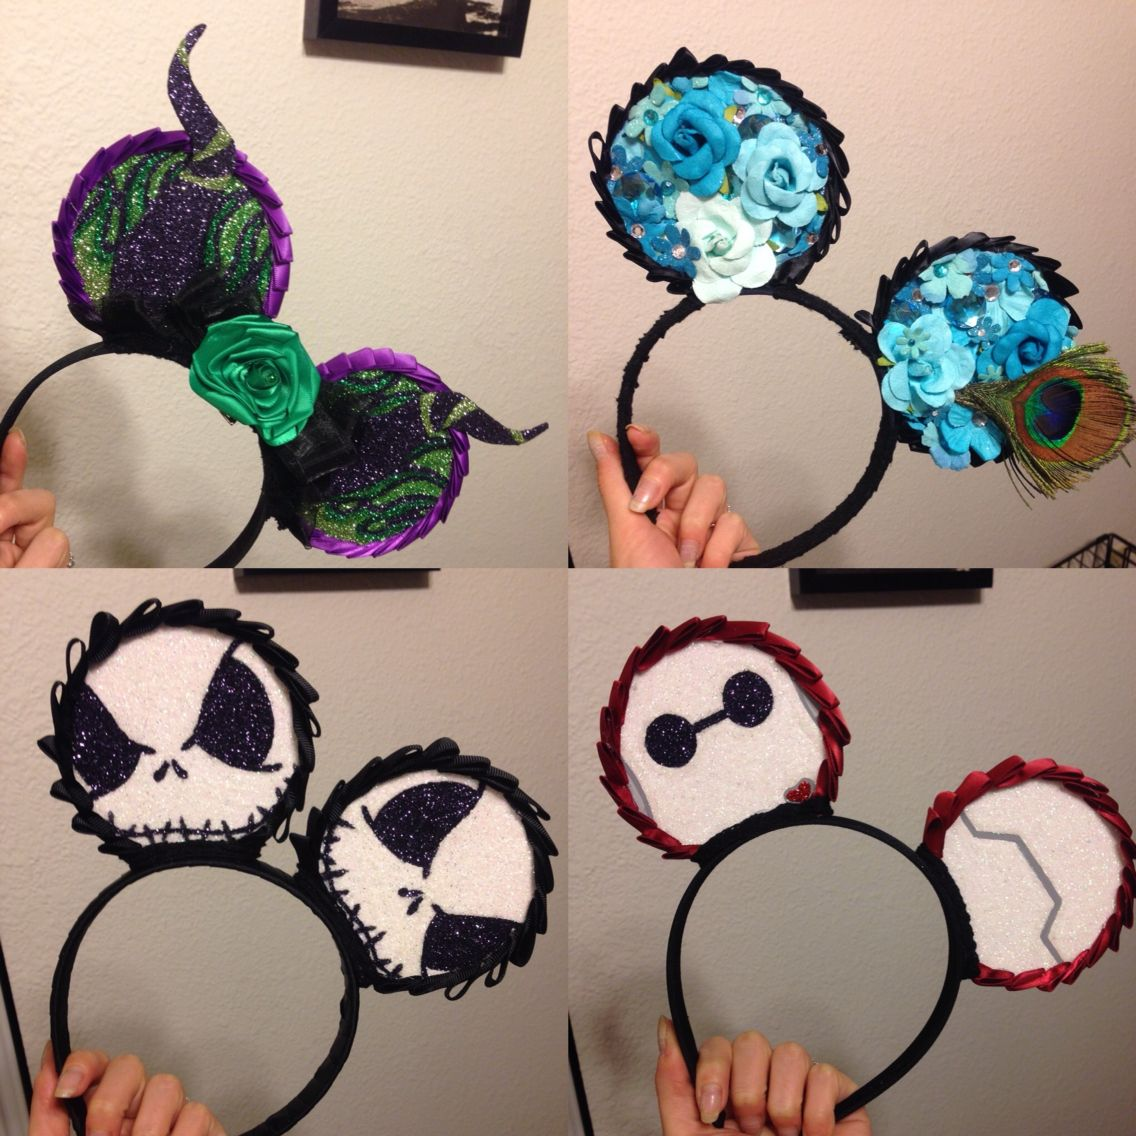 Custom Mickey ears! Will be available within the week on etsy!! Finalizing some things but in the meantime follow me on Instagram for the time being! Updates will be released via Instagram!    #disney #mickeyears #custom #handpainted #instagram #disneyland #etsy #comingsoon #thenightmarebeforechristmas #baymax #bighero6 #maleficent #peacock #blue #glitter #handmade